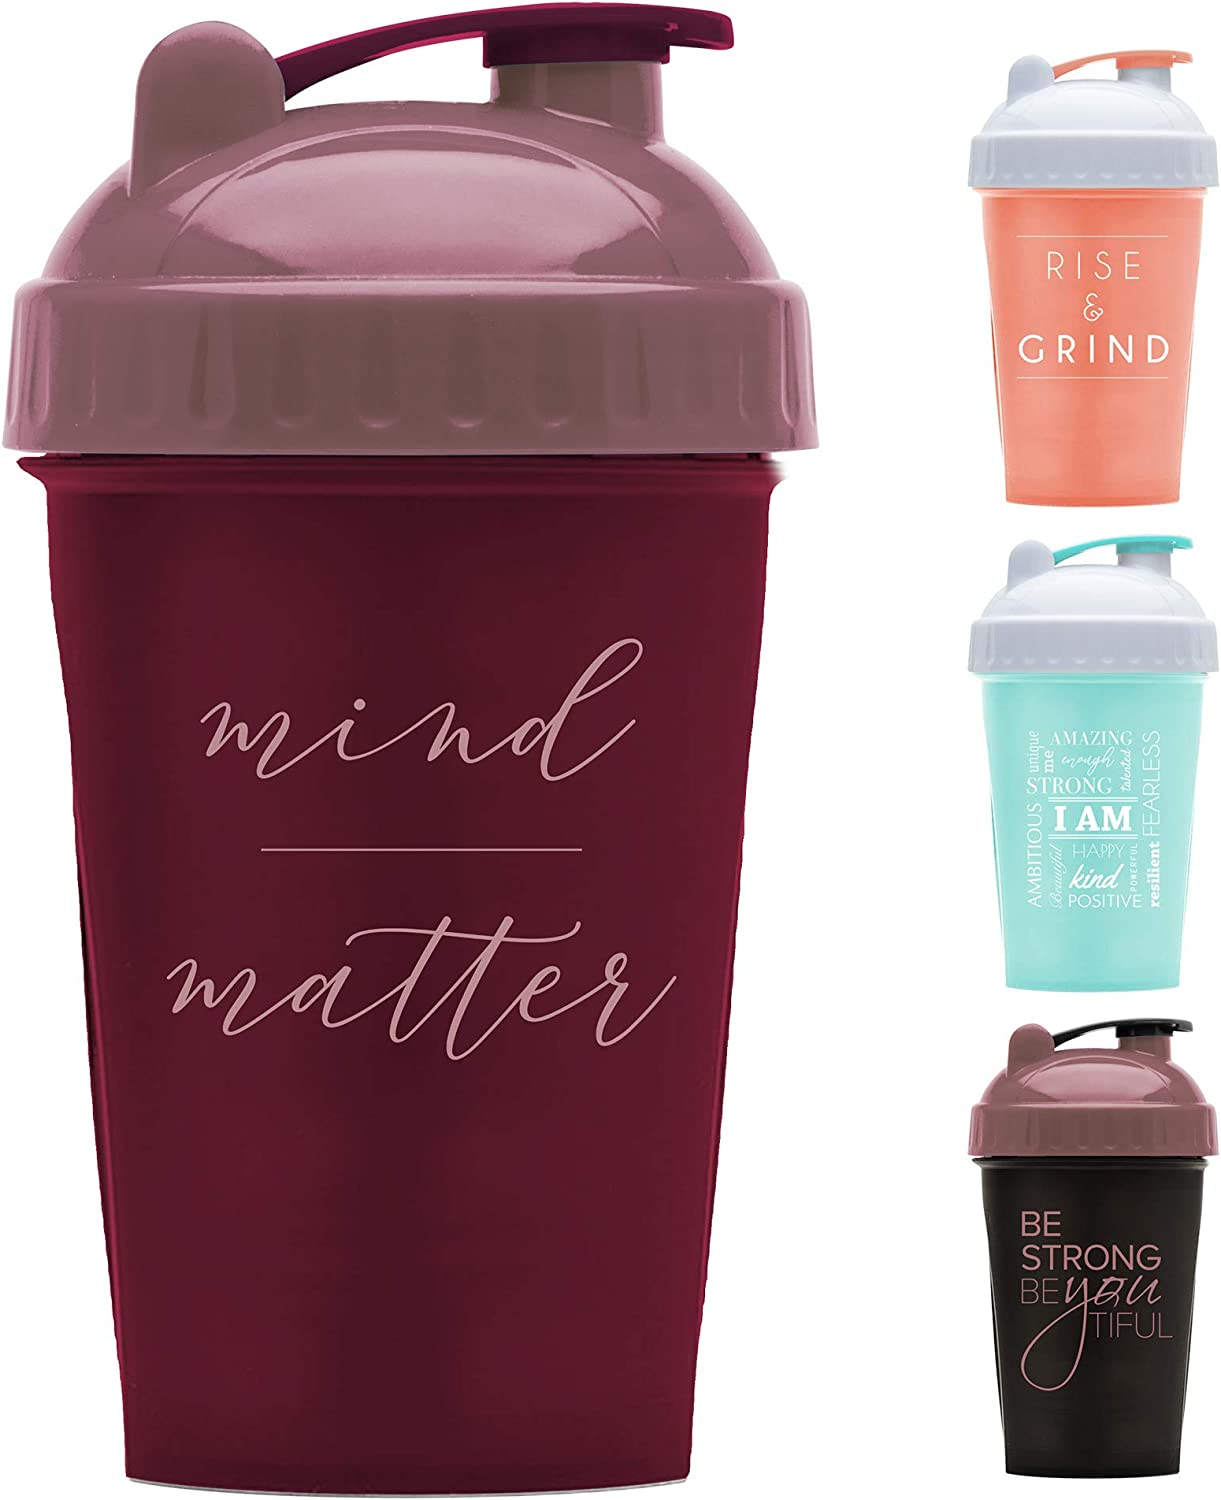 Motivational Quotes on Performa Perfect Shaker Bottle, 20 Ounce Classic Protein Shaker Bottle, Dishwasher Safe, Leak Proof, Multiple Sayings and Colors (Mind Over Matter - Maroon/Rose - 20oz)